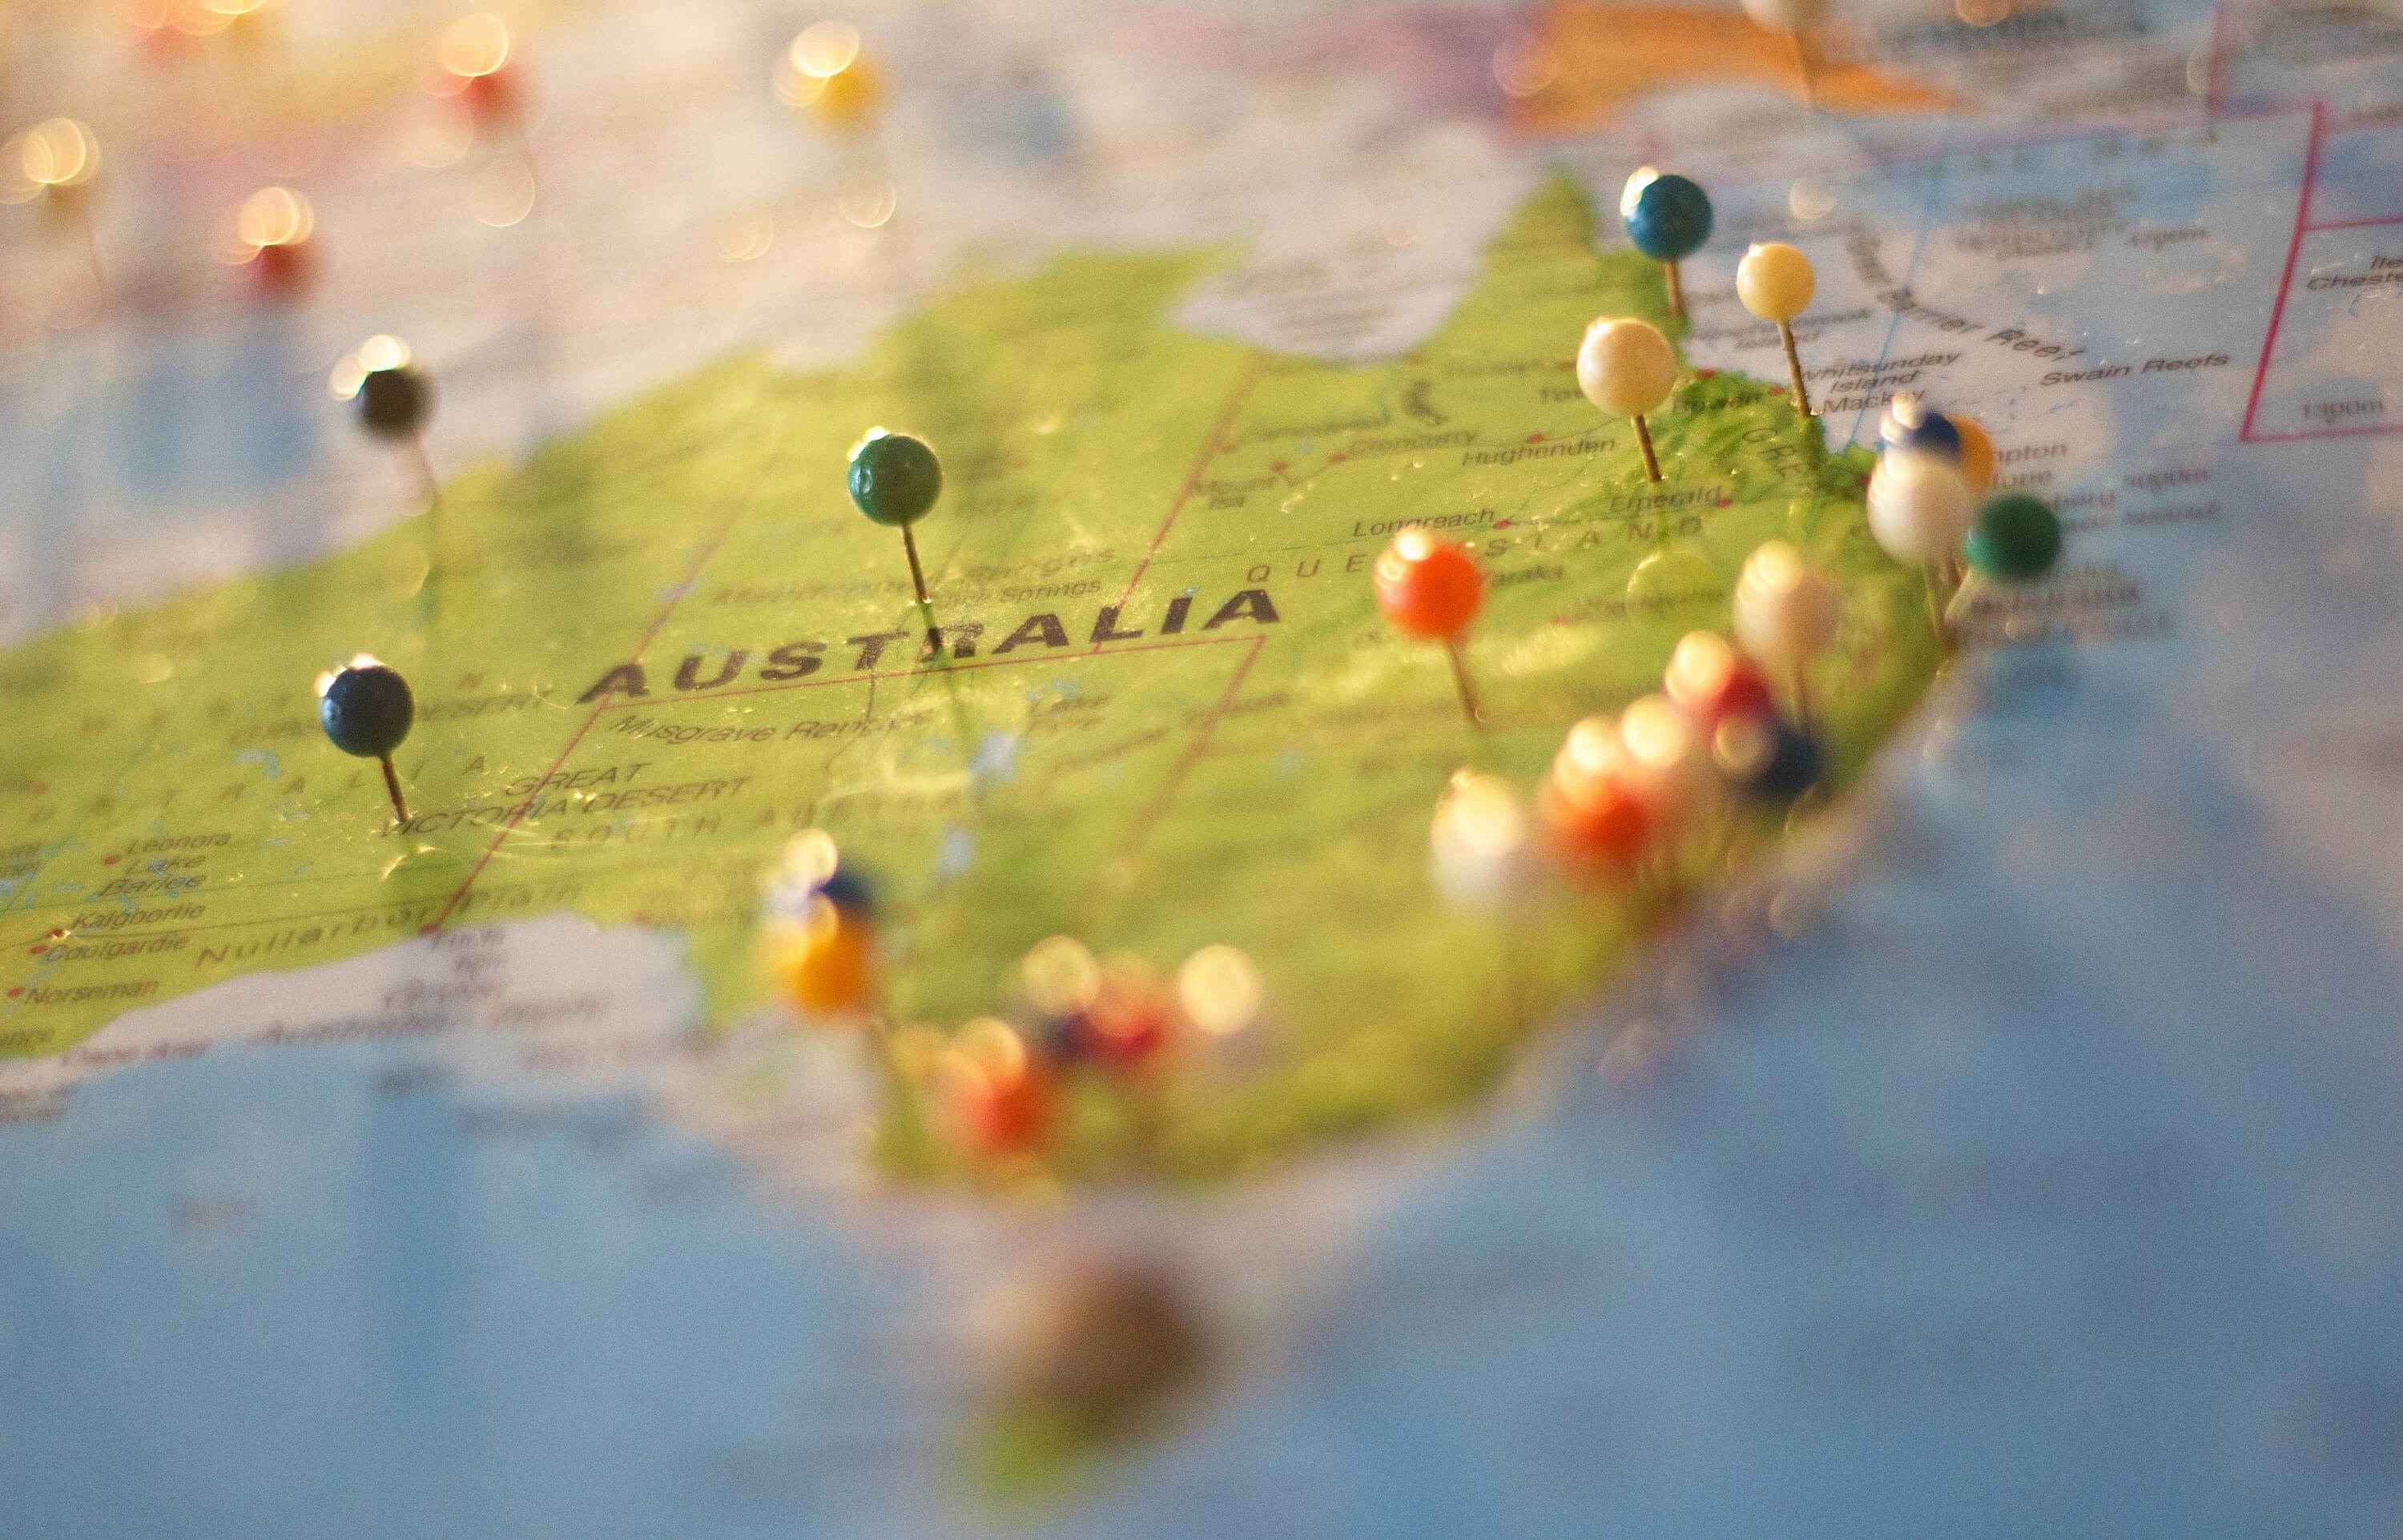 10 tips for relocating to Australia with your family